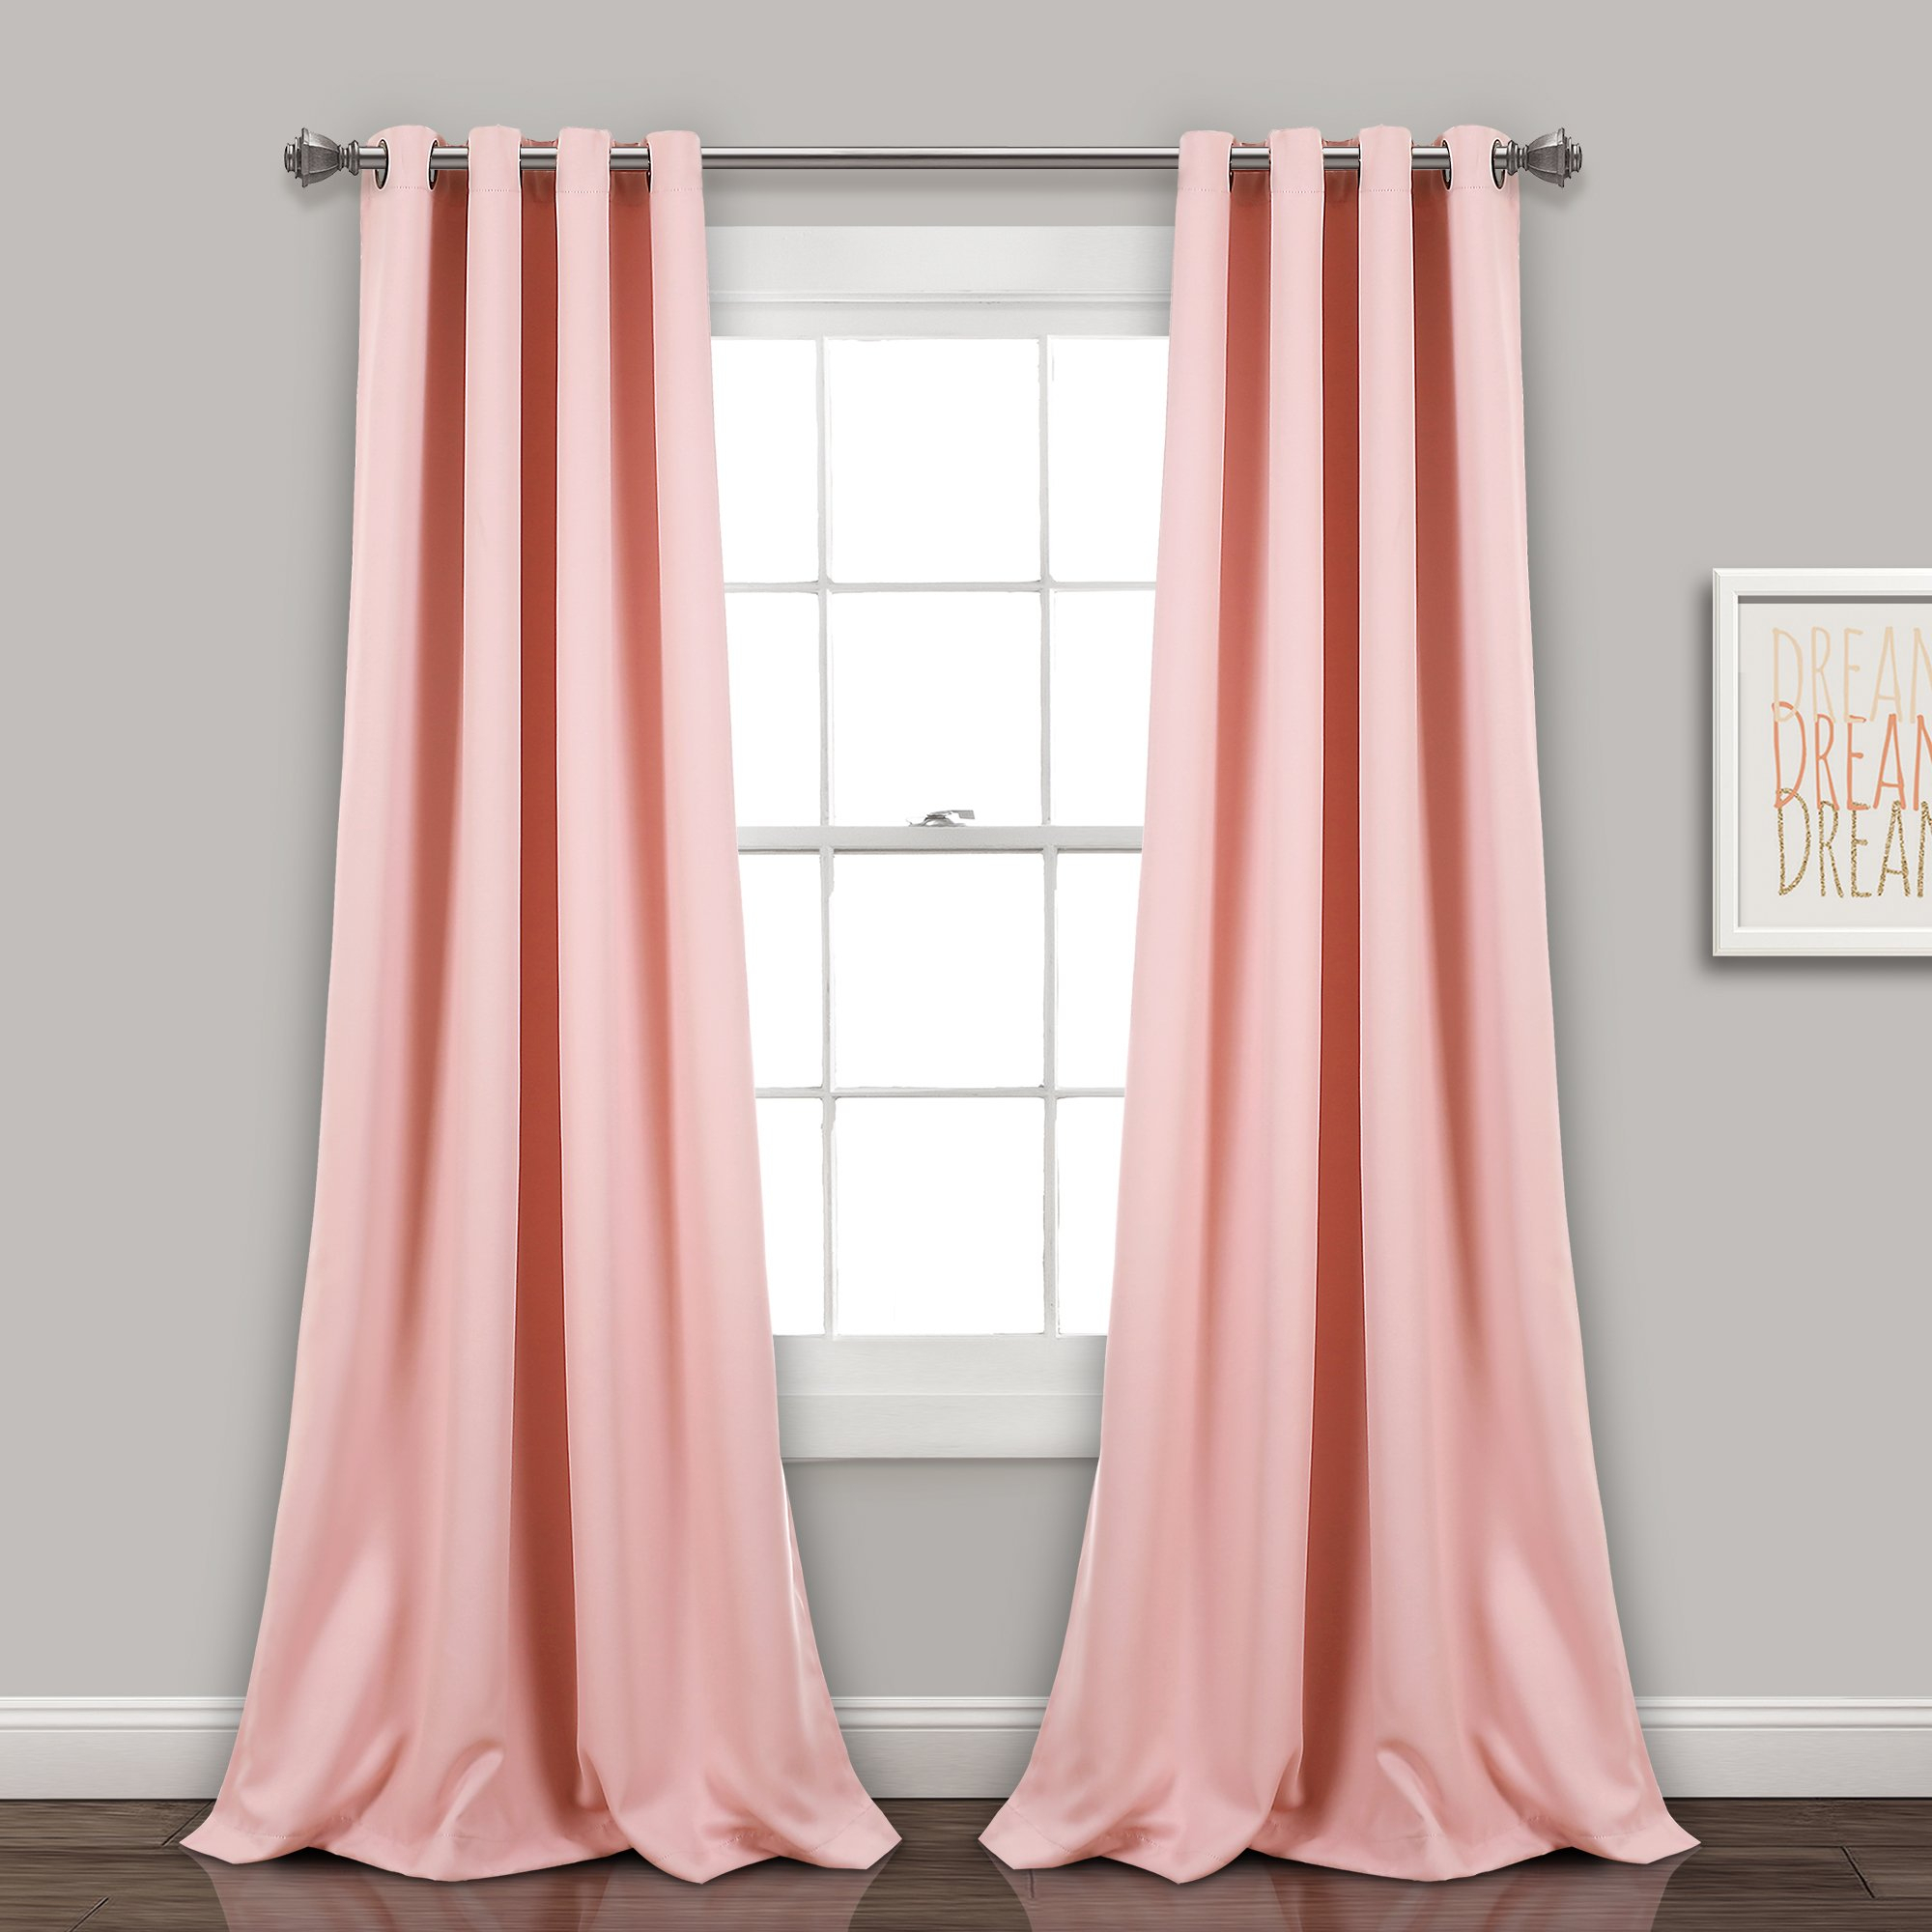 Lush Decor 16T002464 Insulated Grommet Blackout Window Curtain Panel Pair, Pink For Insulated Blackout Grommet Window Curtain Panel Pairs (View 16 of 20)